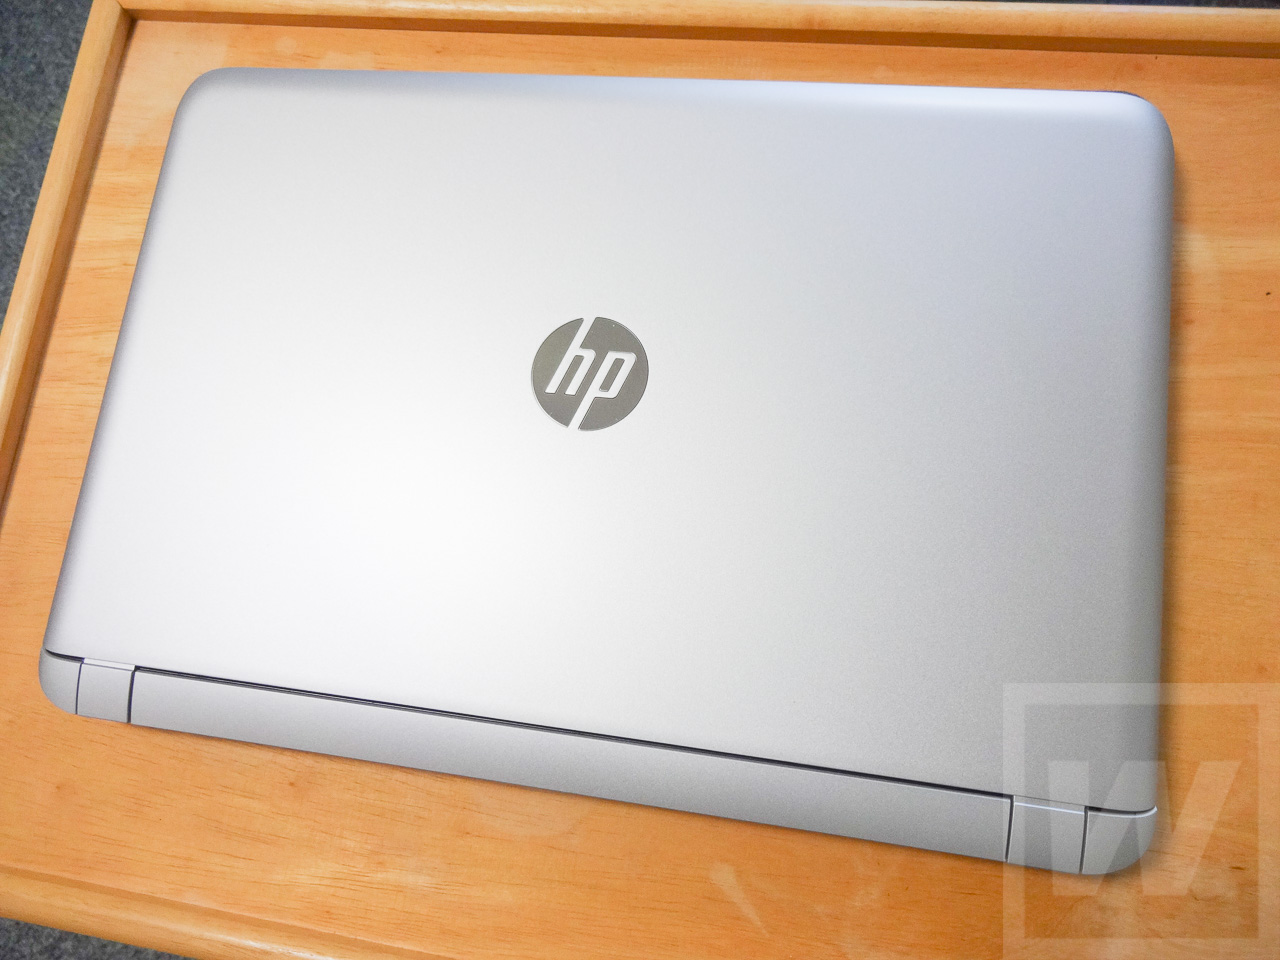 HP Pavilion 15-ab200 Review 017